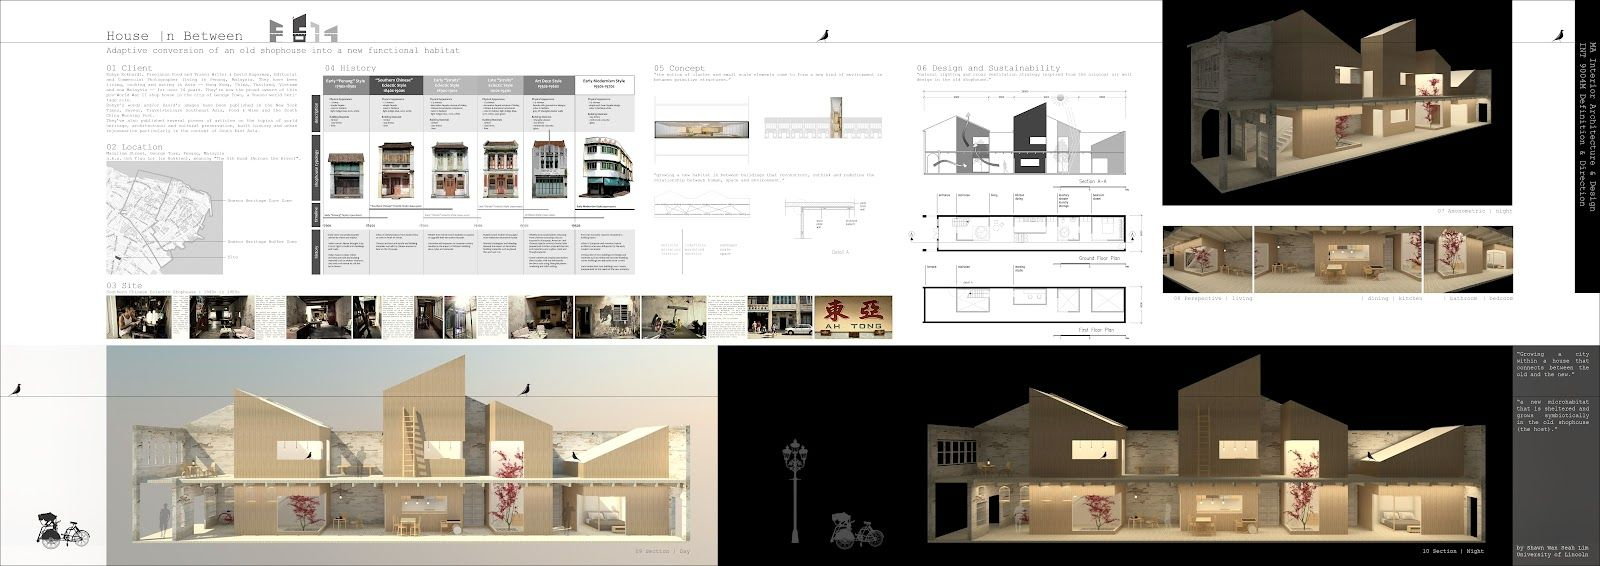 Architecture Design Presentation interior architecture + design: shophouse conversion in george